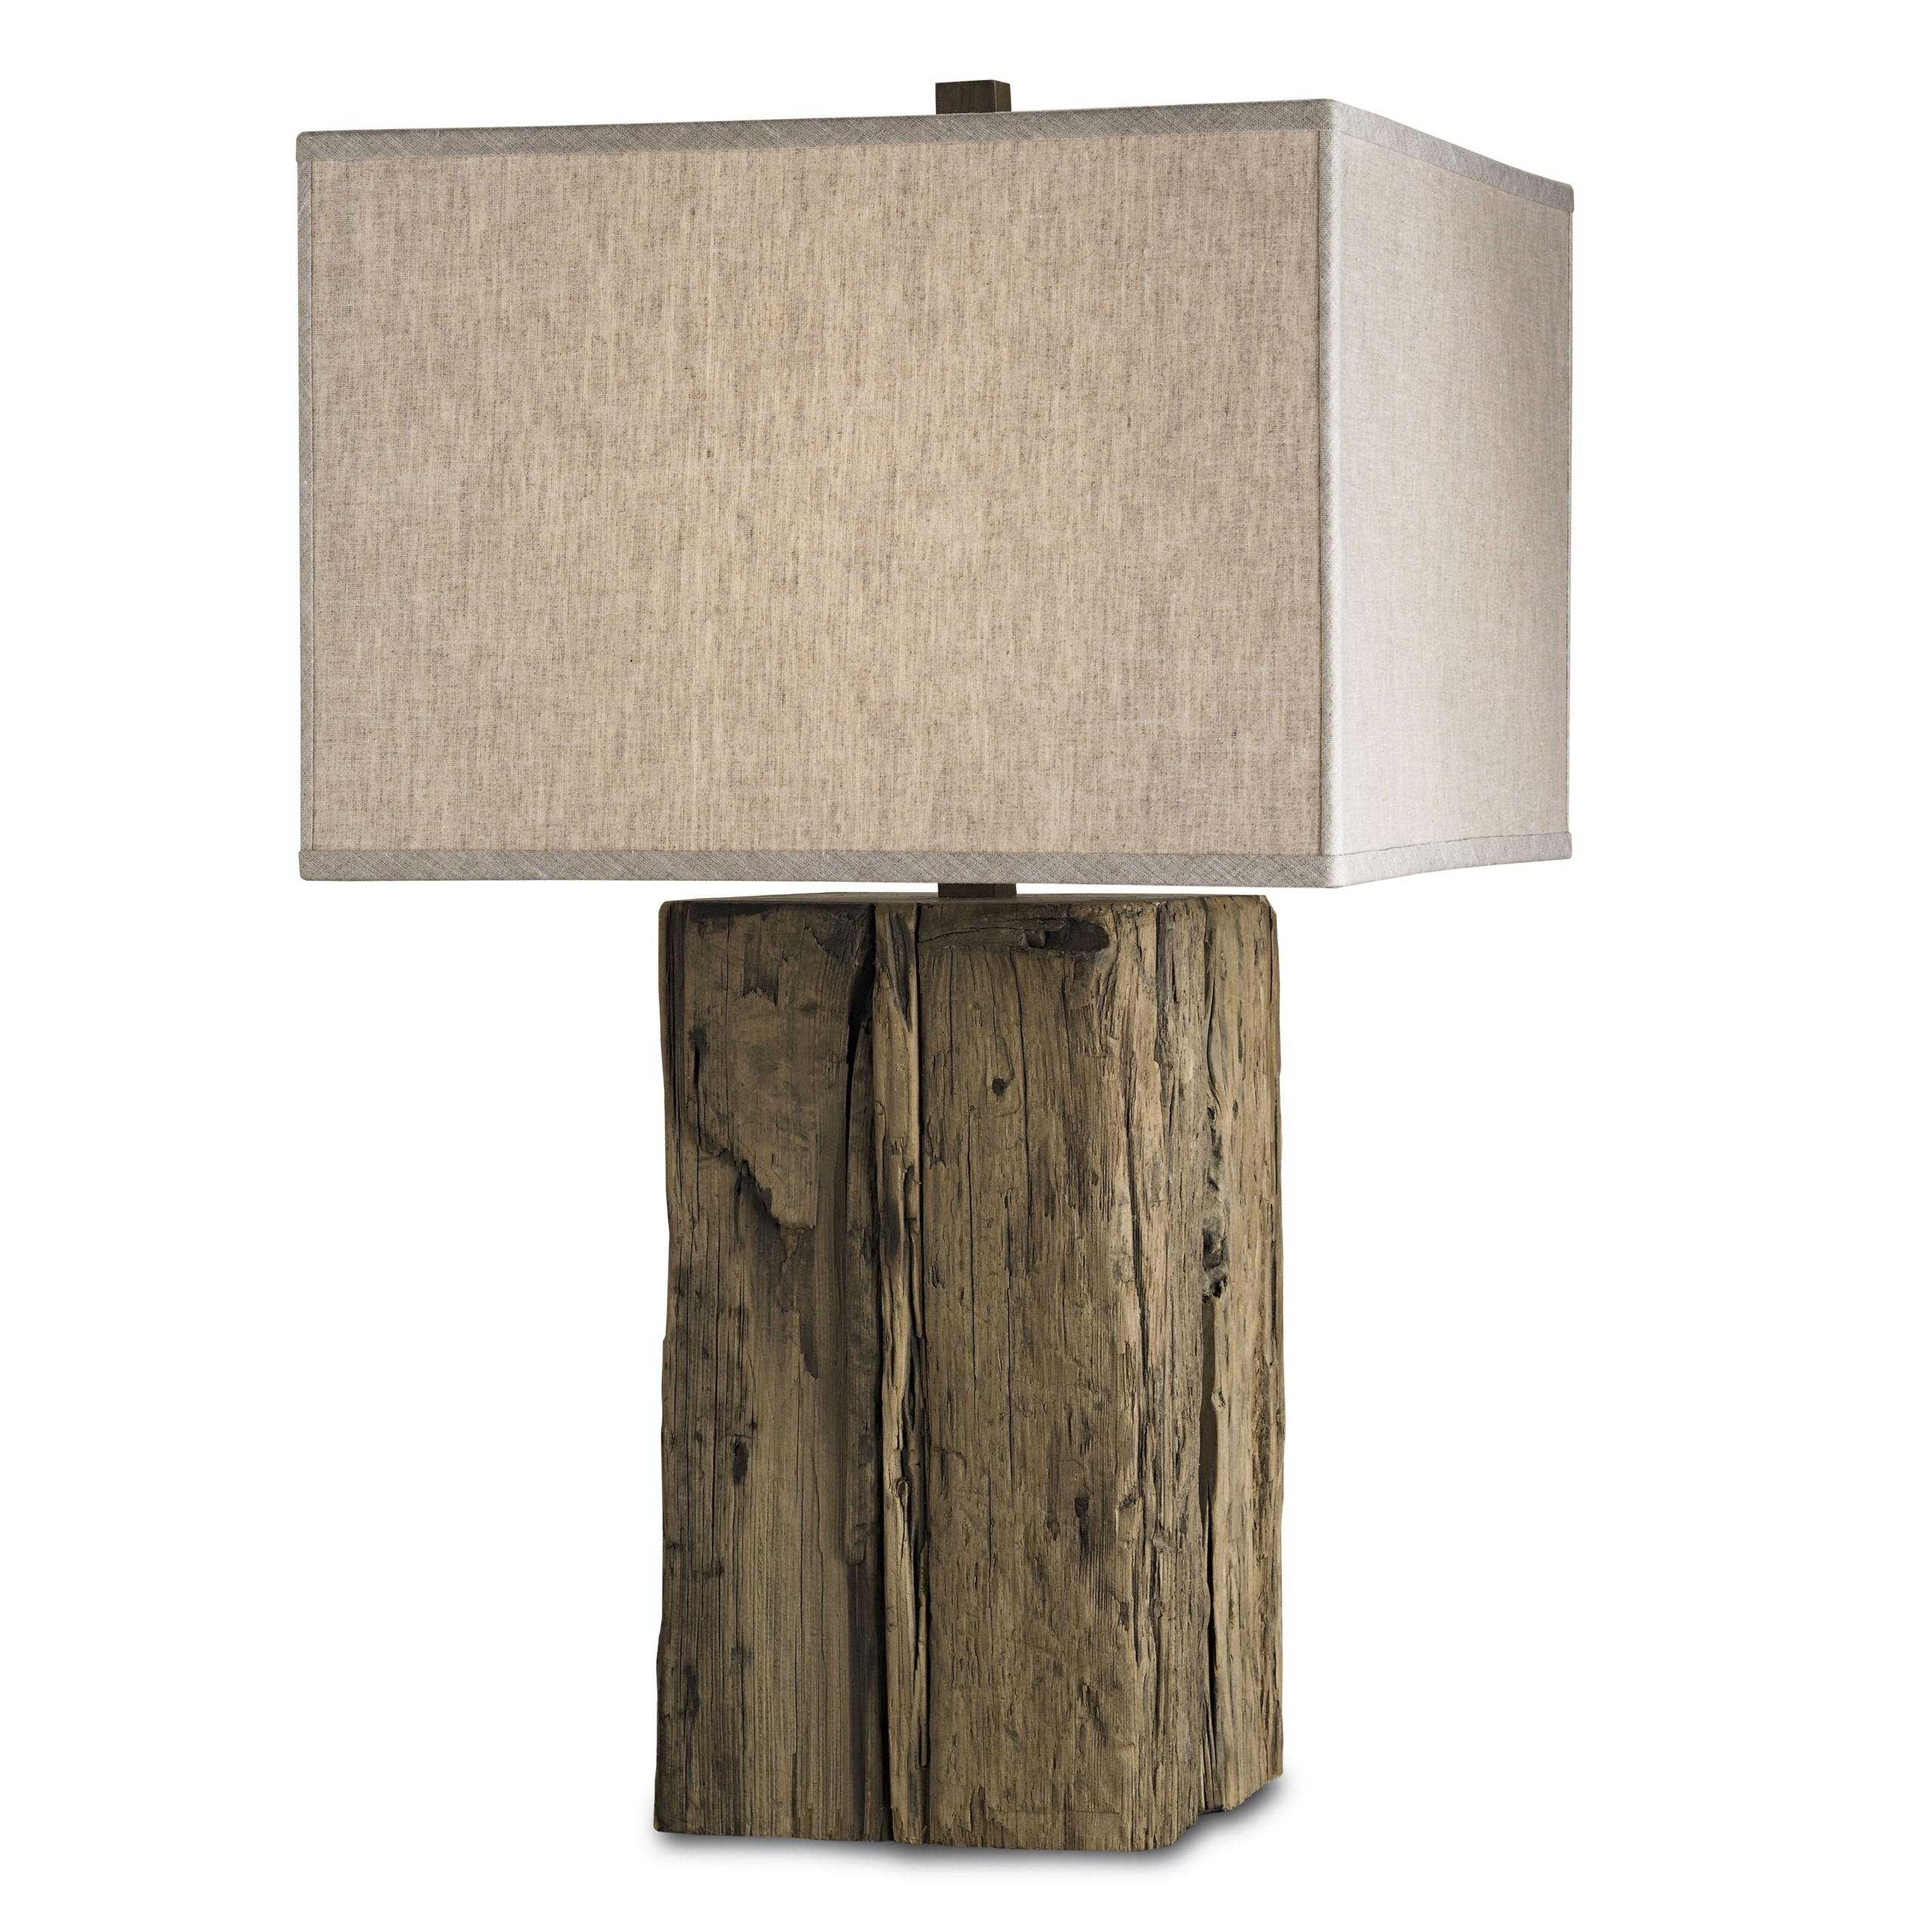 Delicieux Wood Base Table Lamp 2